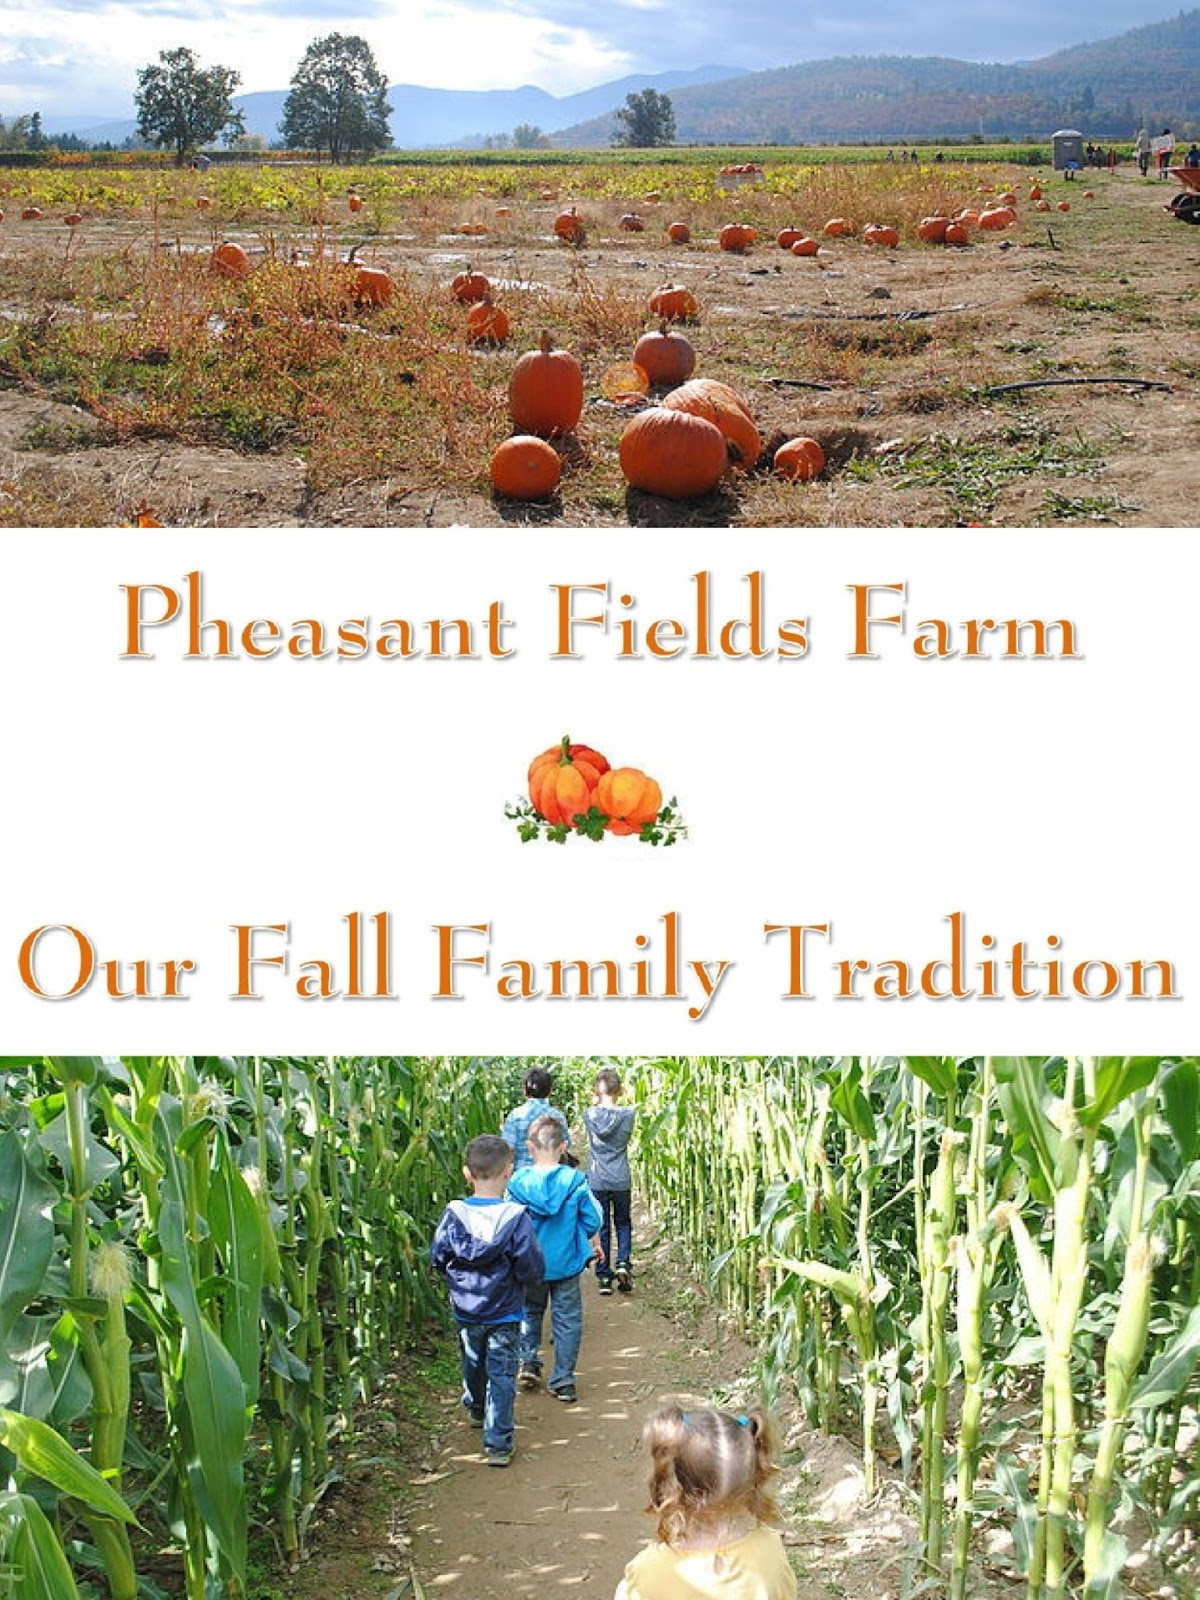 PHEASANT FIELDS FARM - Medford - Phoenis - Pumpkin Patches - Corn Maze - What to do in Southern Oregon - Kids - Fall